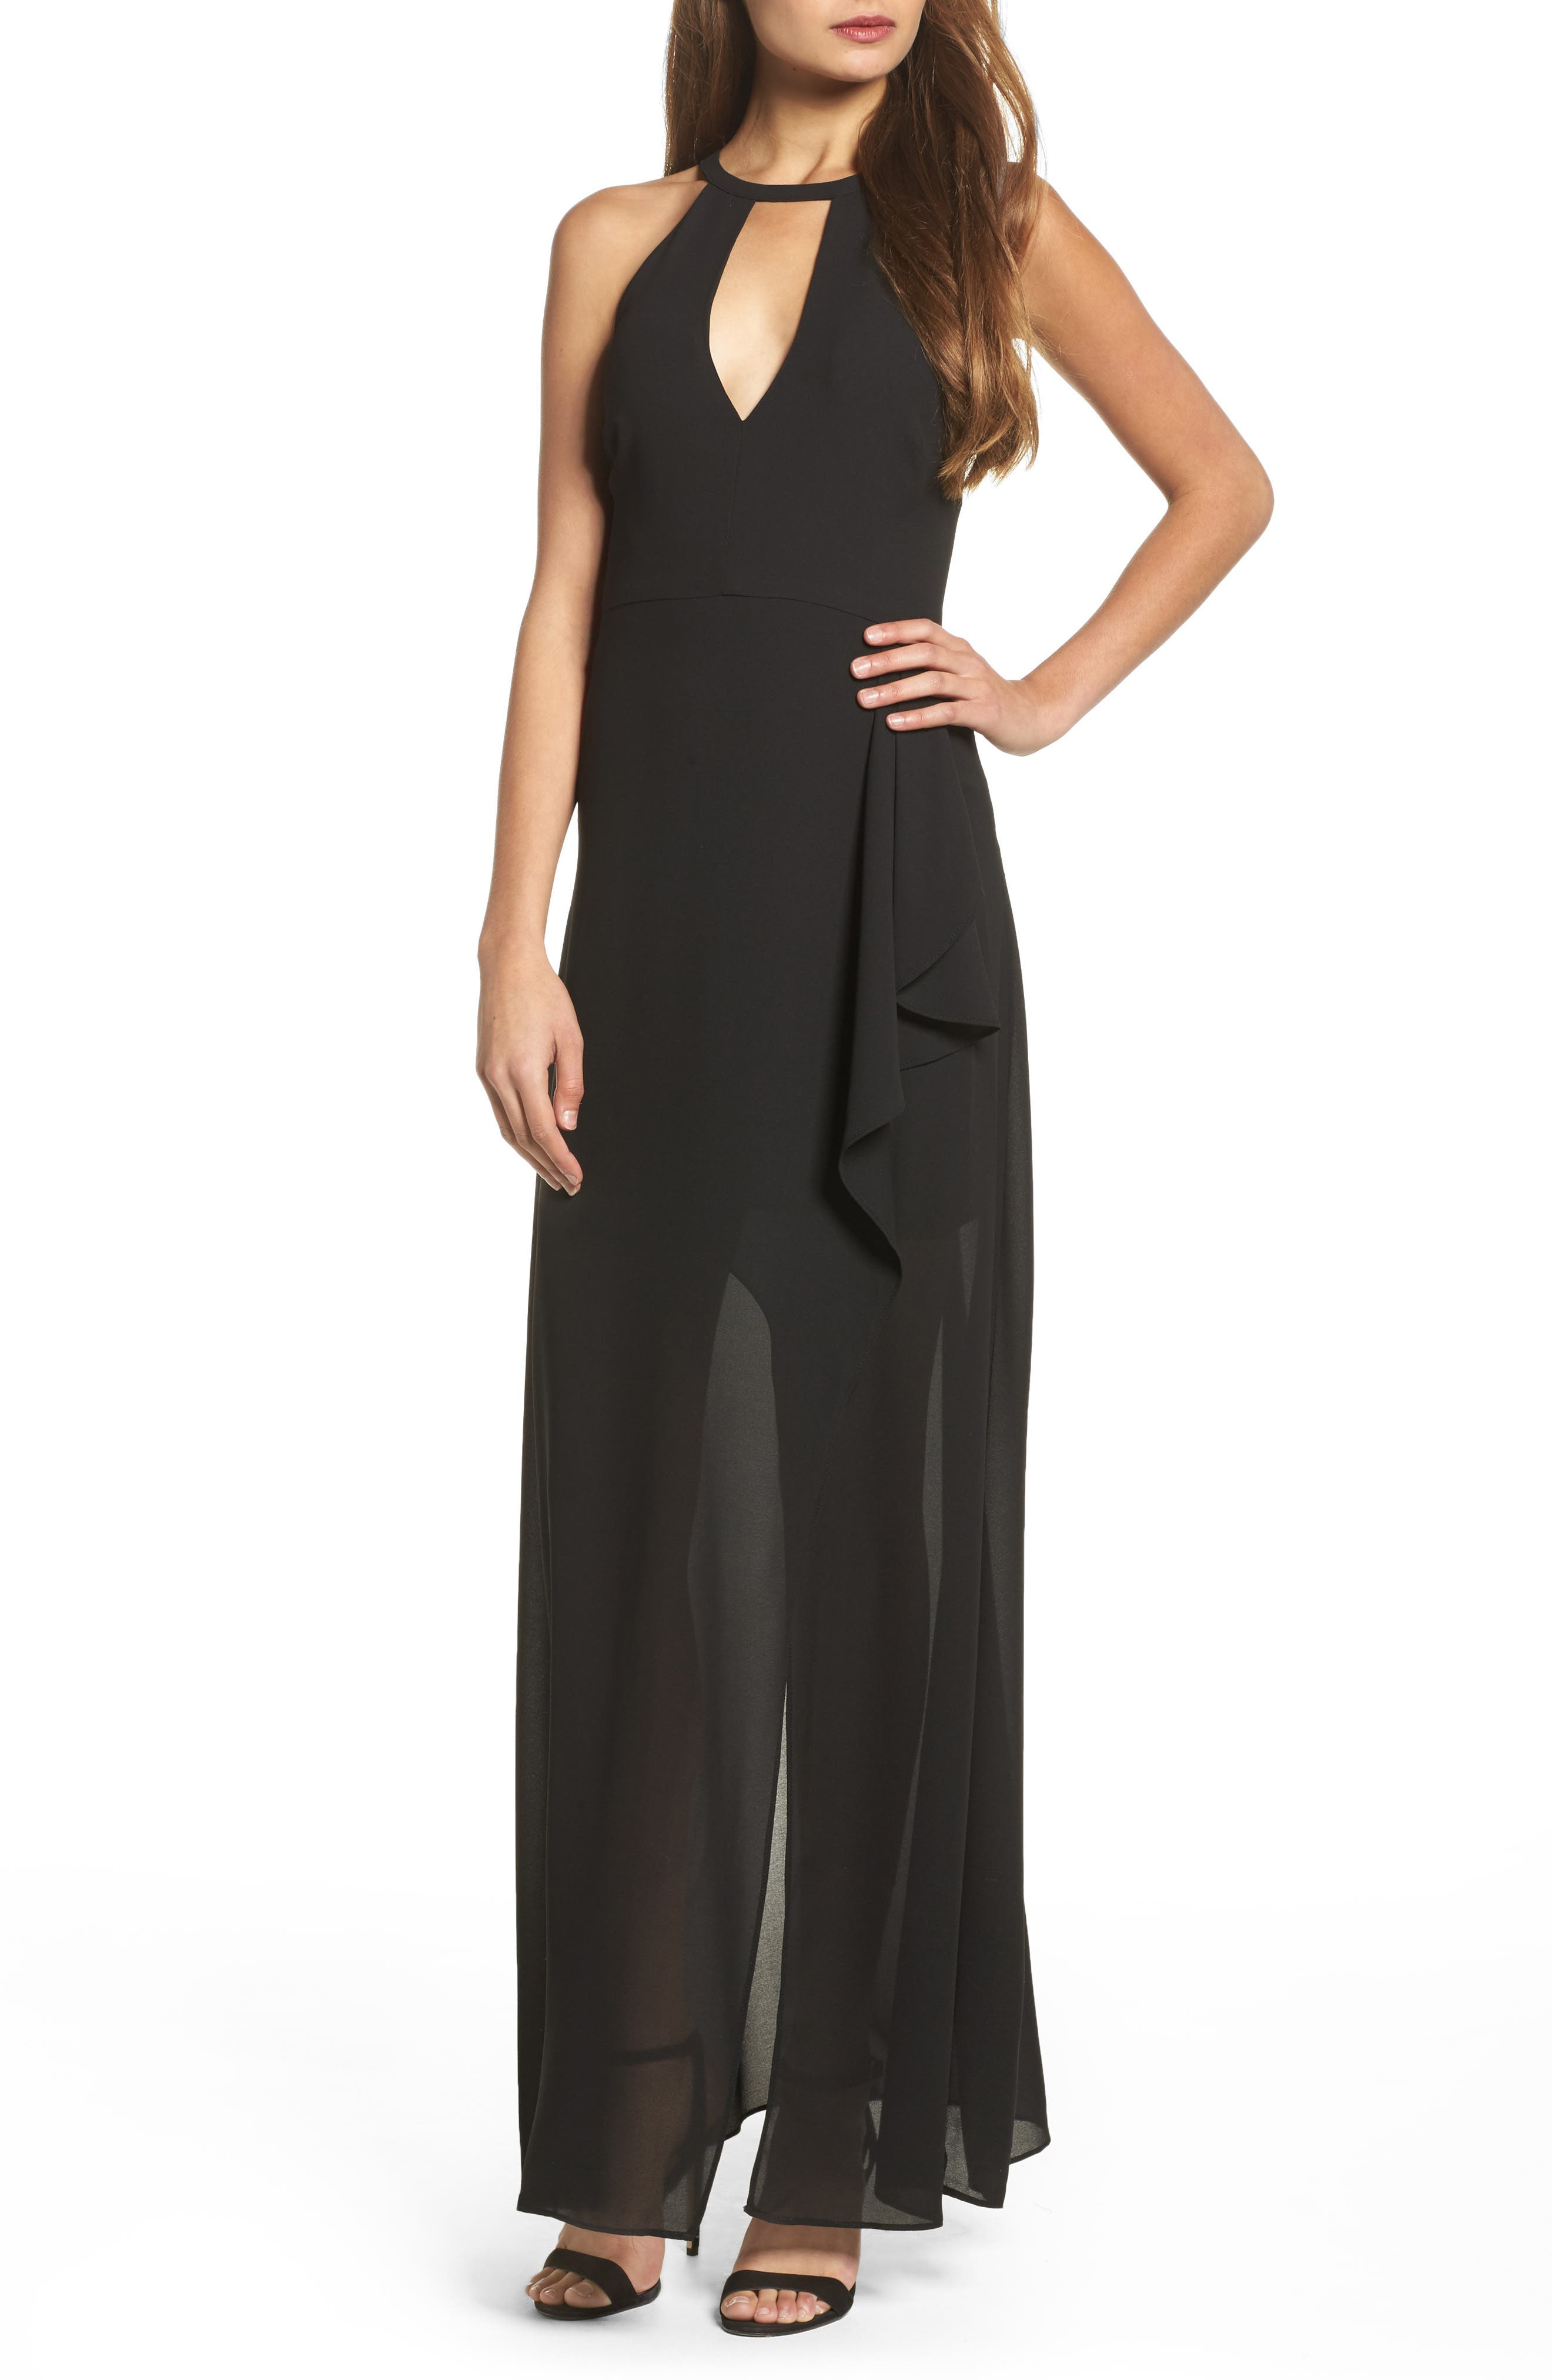 I Spy Maxi Dress,                             Main thumbnail 1, color,                             Black